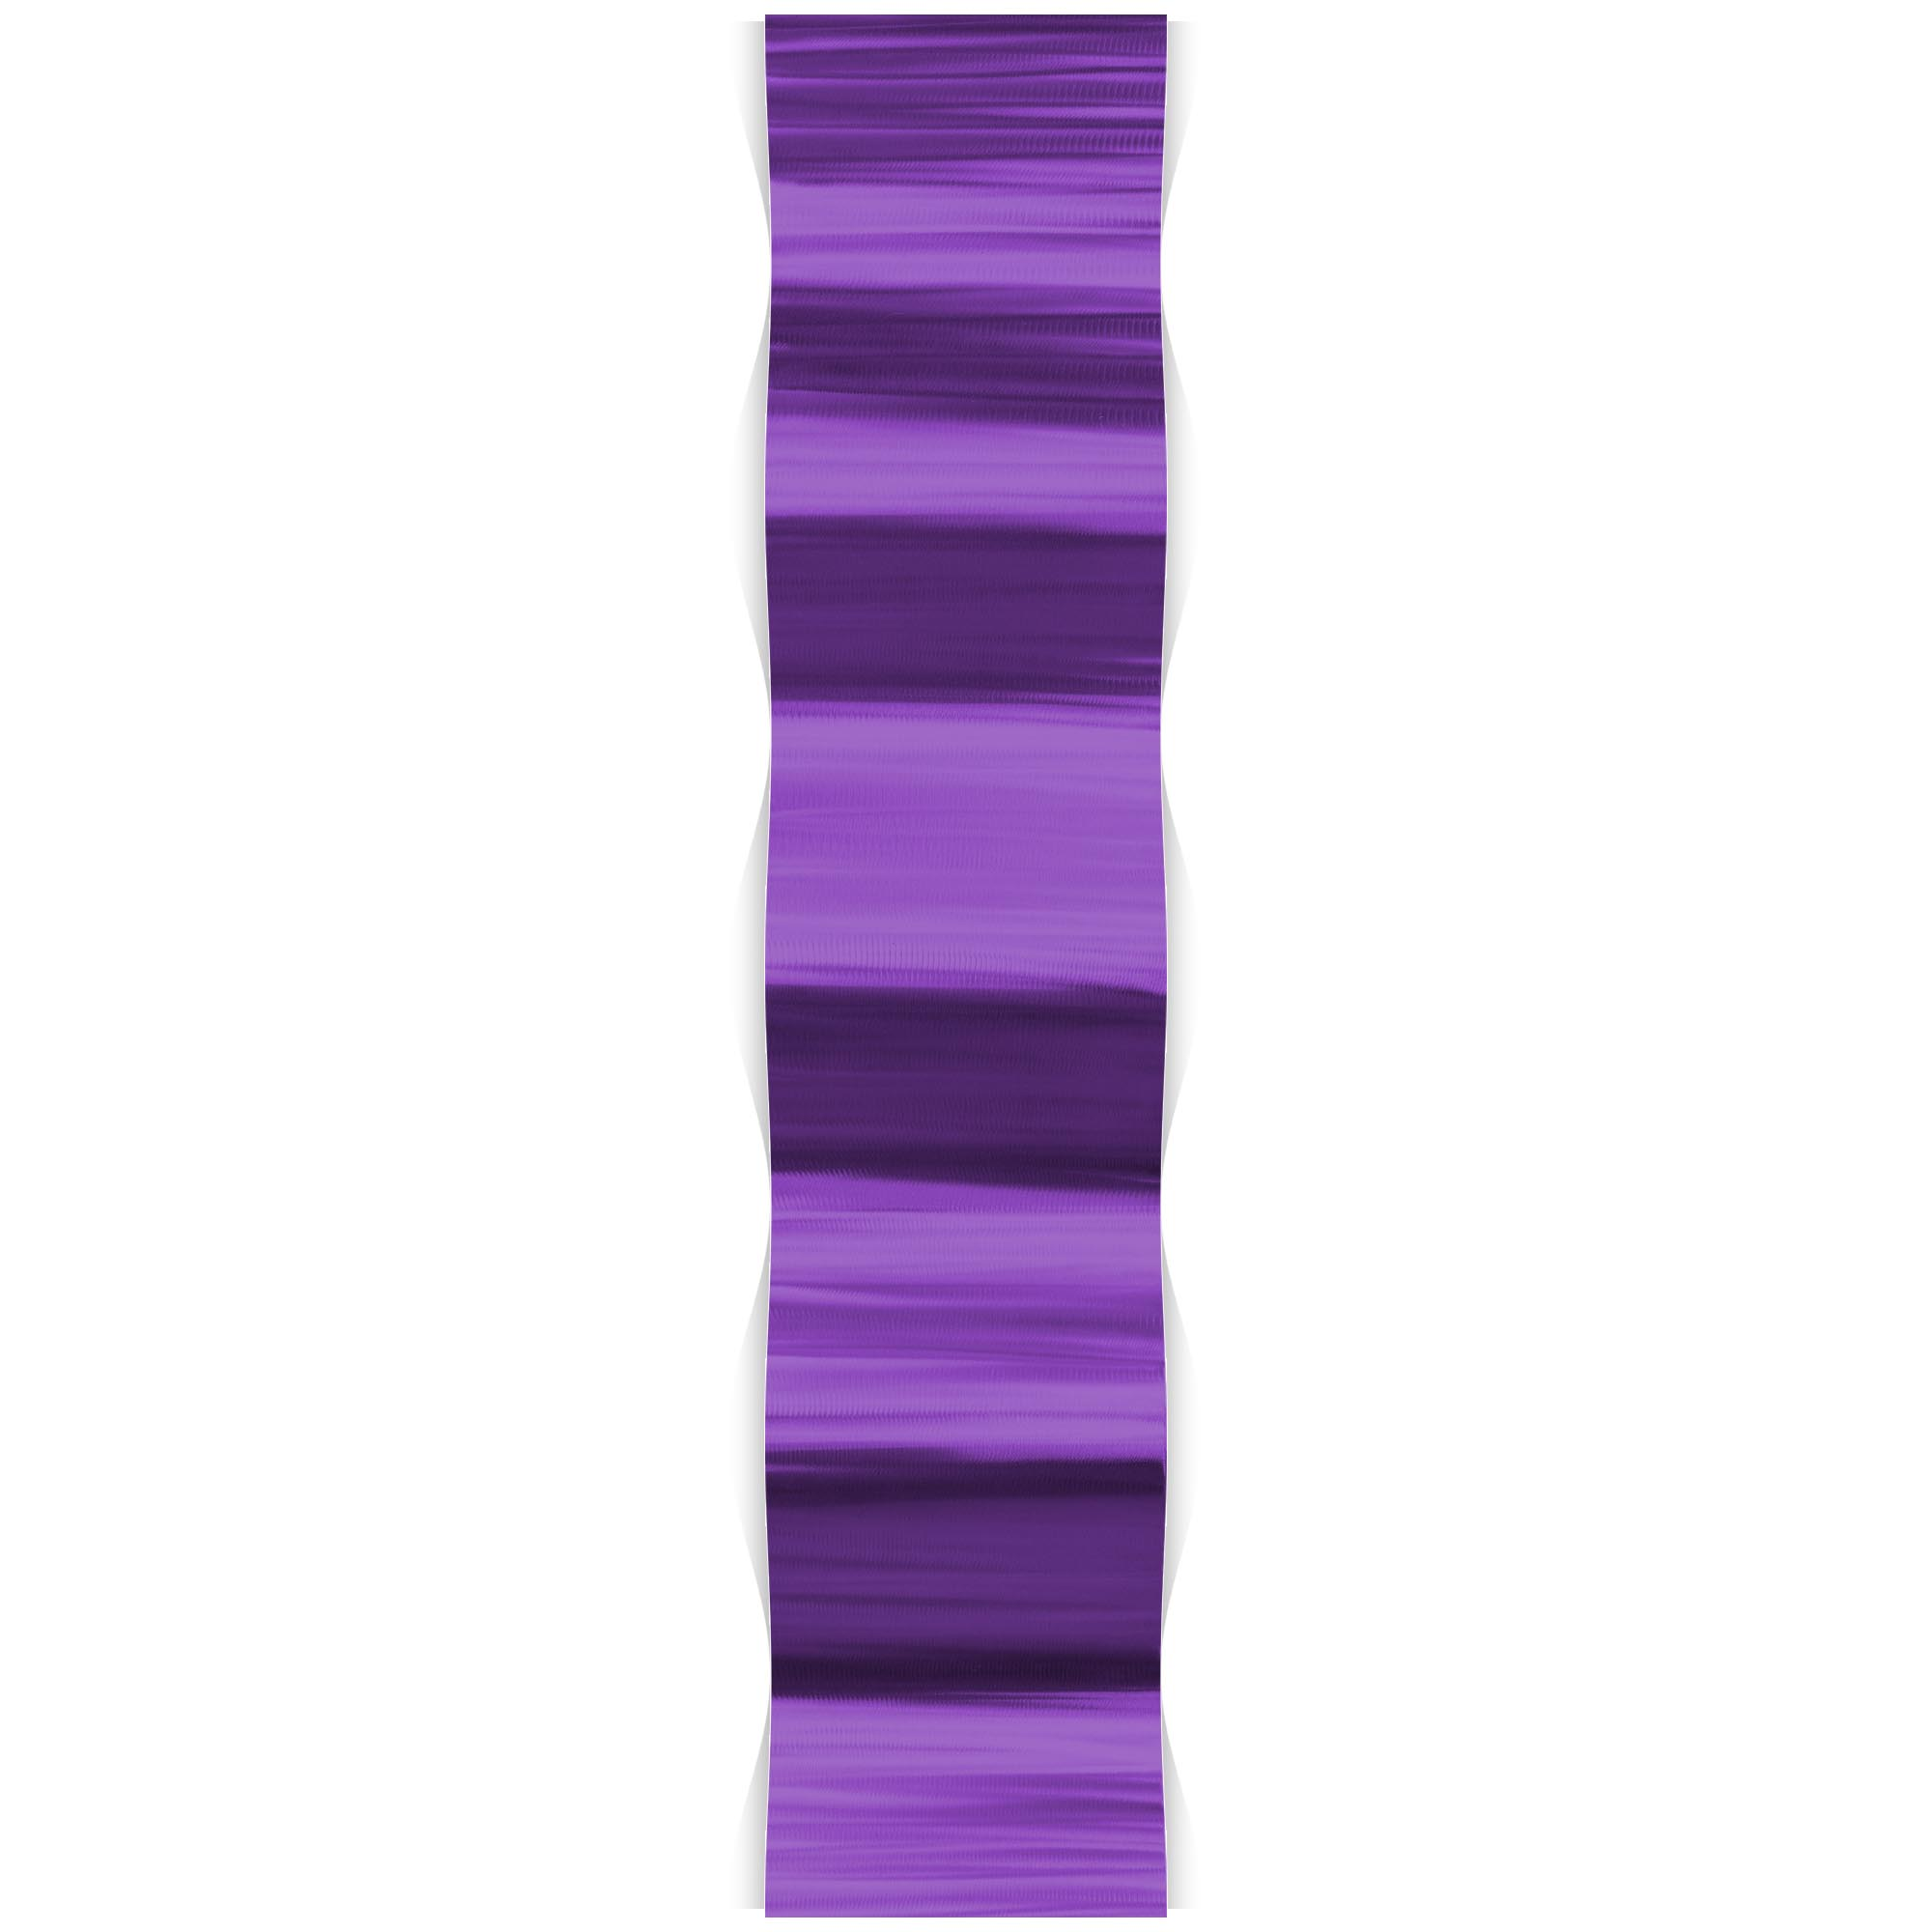 Helena Martin 'Purple Wave' 9.5in x 44in Original Abstract Metal Art on Ground and Painted Metal